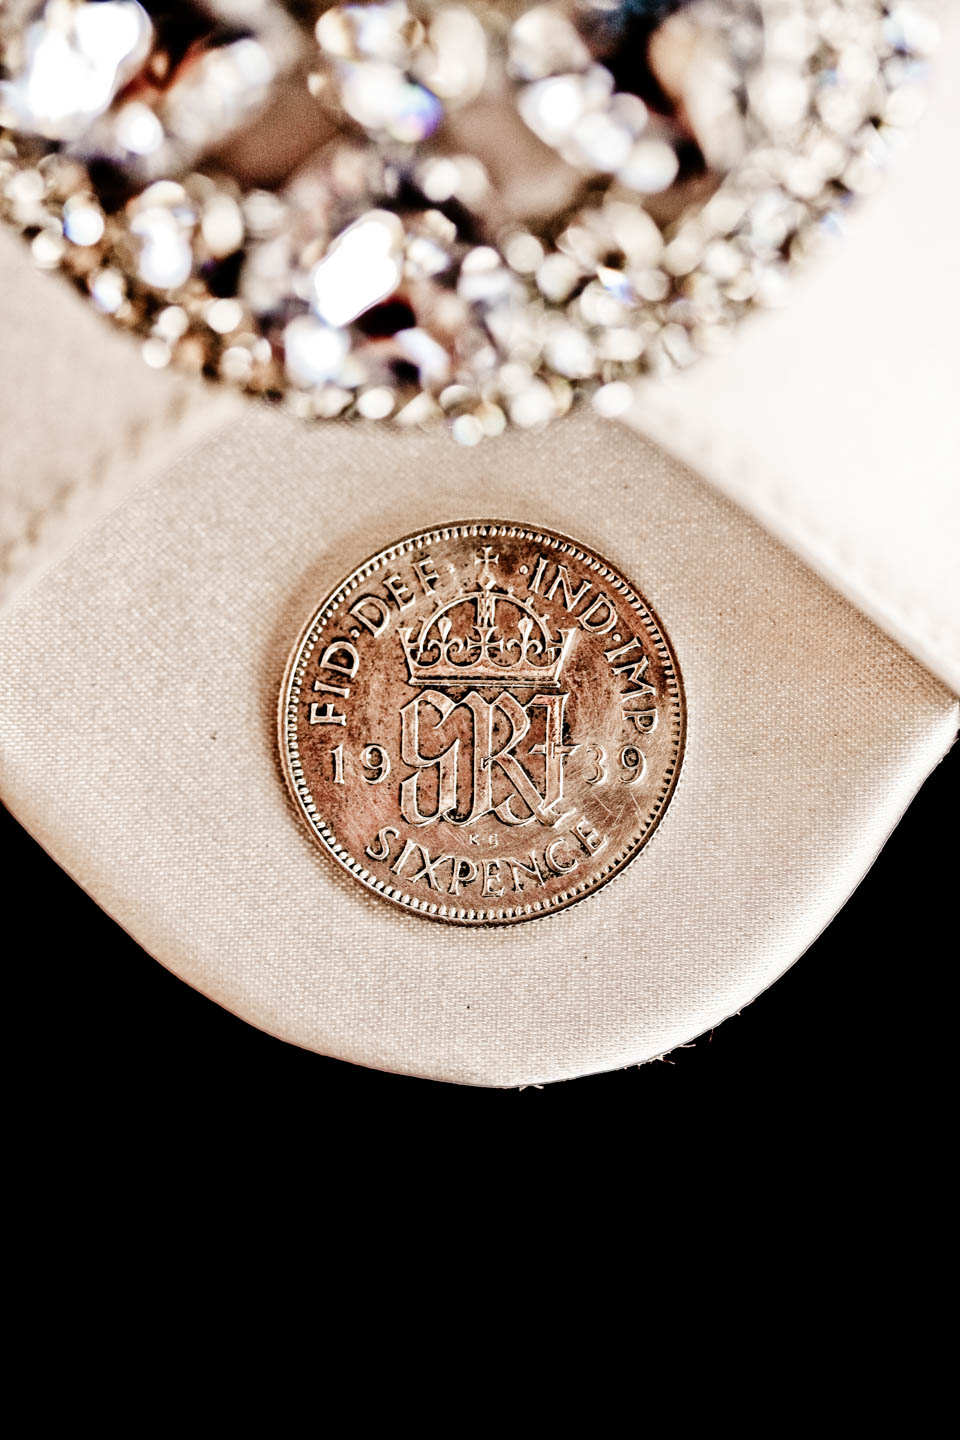 wedding good luck charm sixpence.